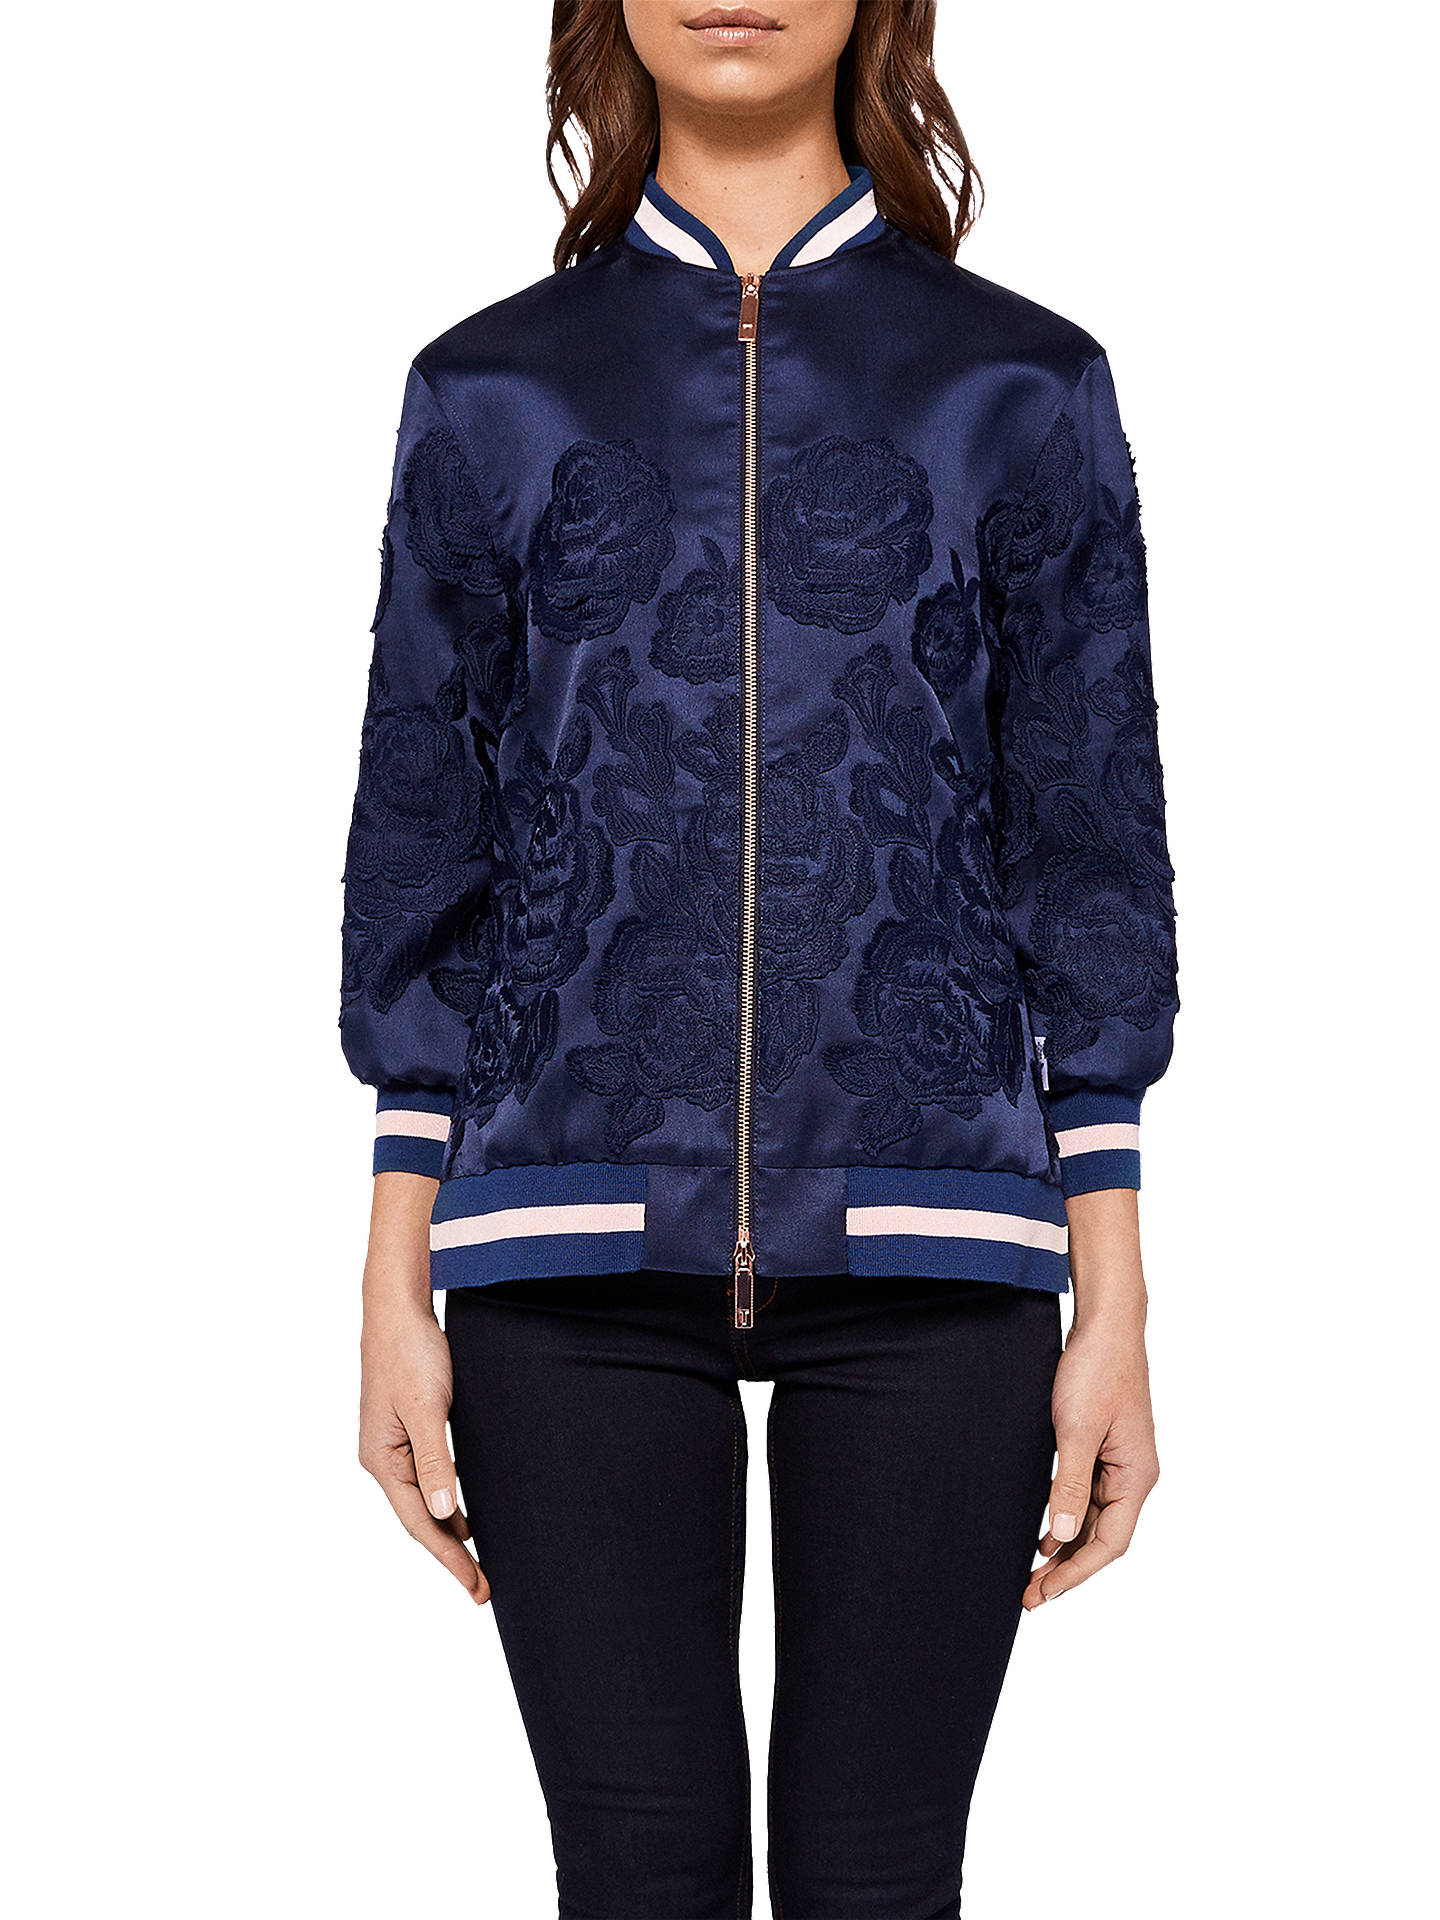 0d8b3be953f2c3 Buy Ted Baker Mitsy Floral Jacquard Bomber Jacket, Navy, 0 Online at  johnlewis.